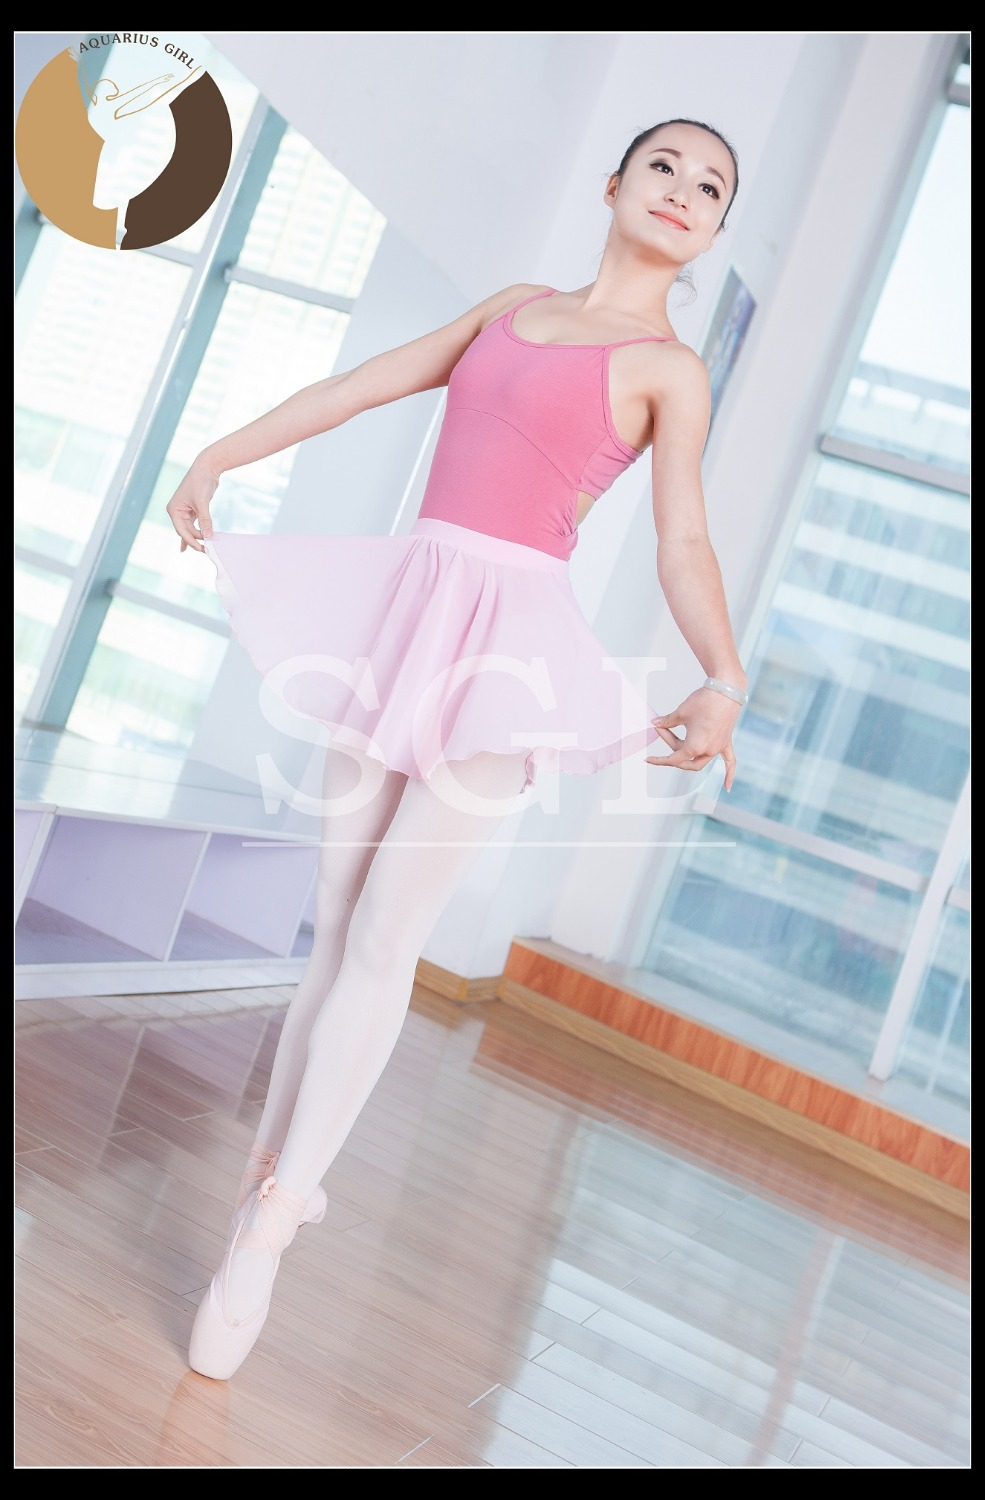 d5c095667 Aliexpress.com   Buy (5 pieces lot)Adult Camisole Pink Leotard ...